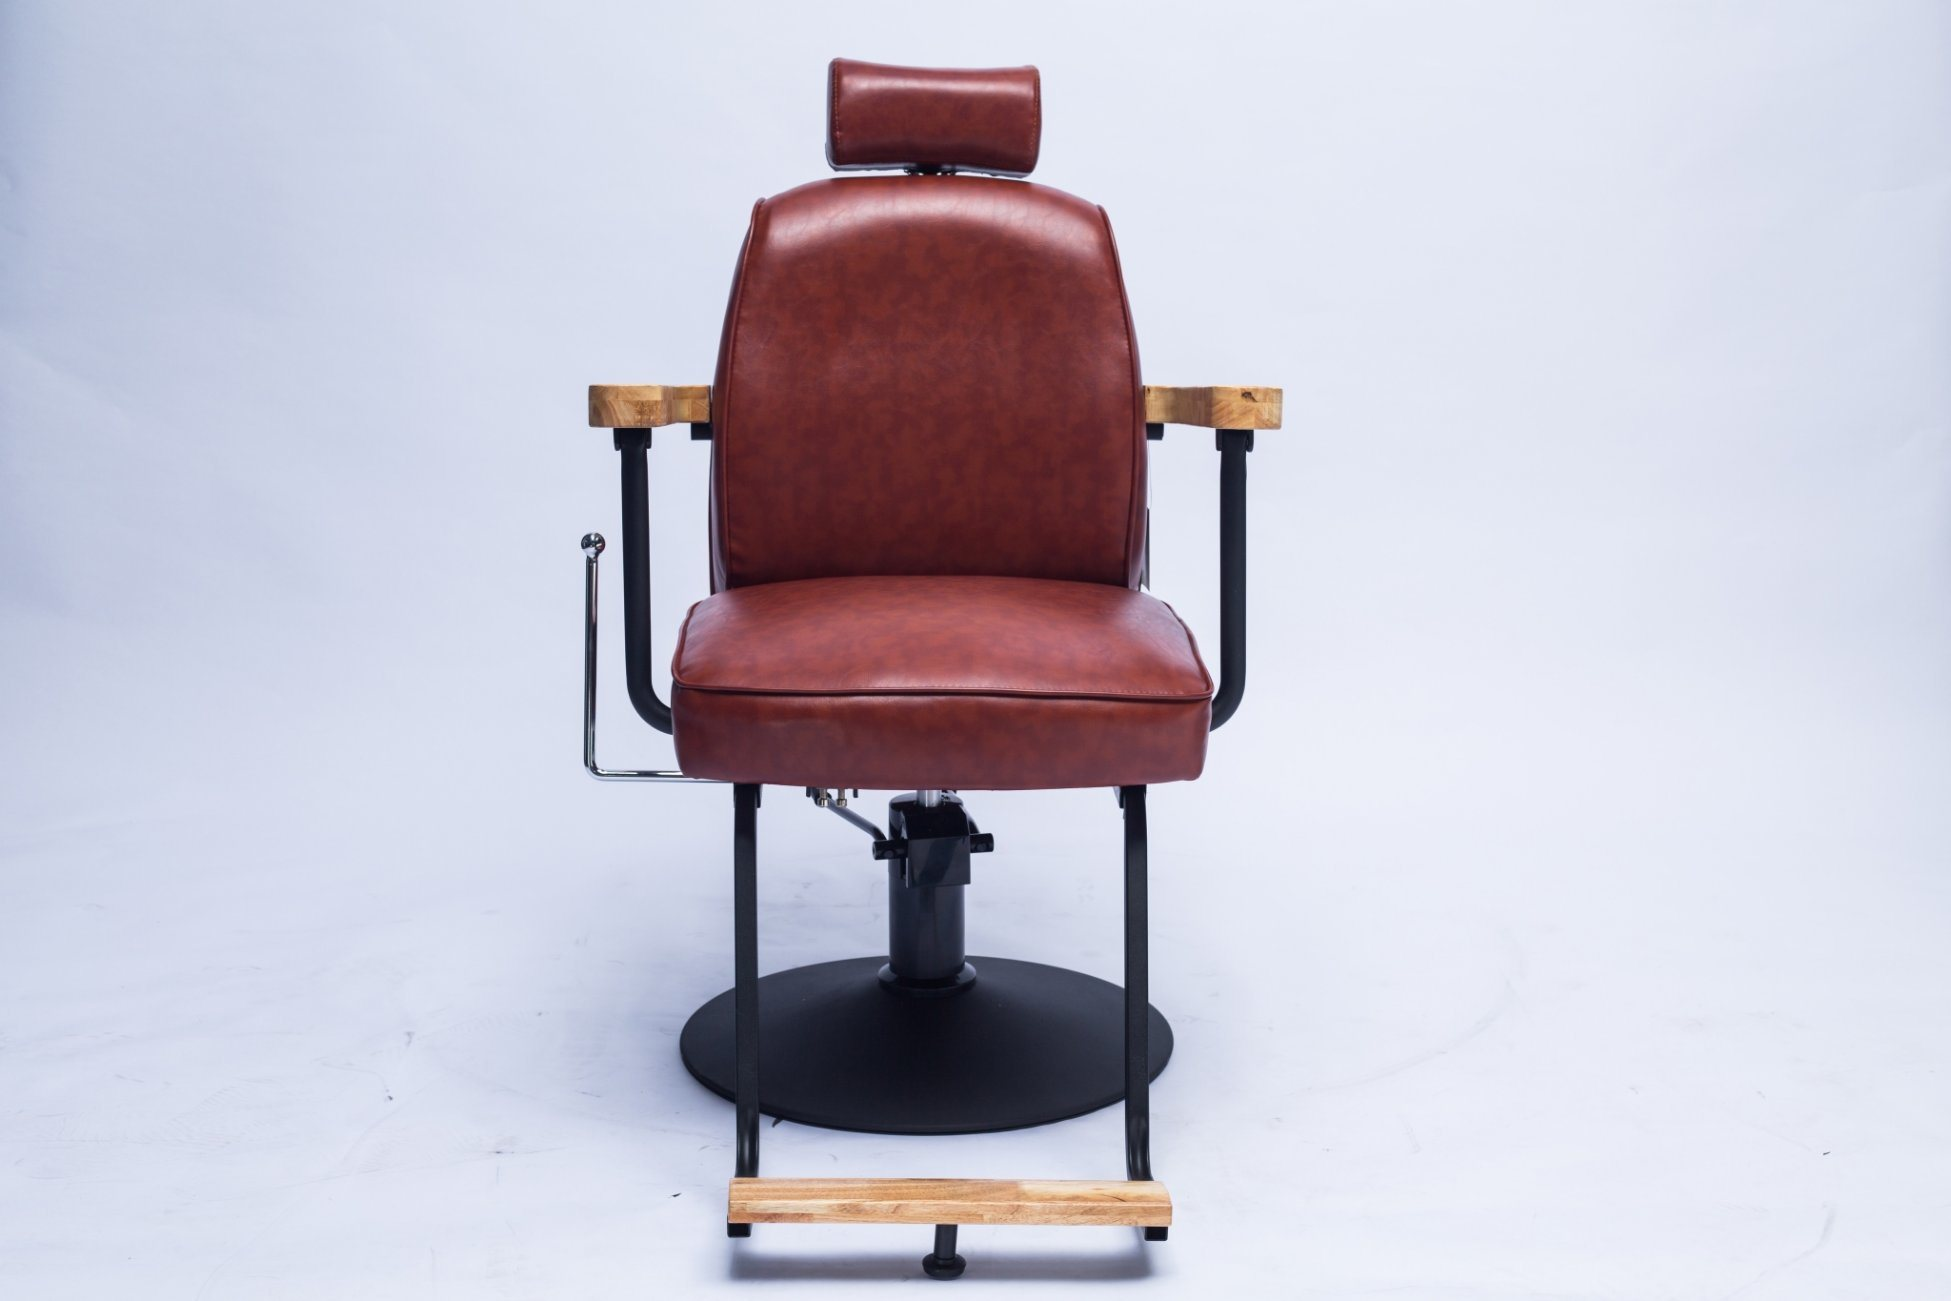 Belmont Barber Chair >> Hot Item New Style Barber Shop Belmont Barber Chair For Sale My 008 18